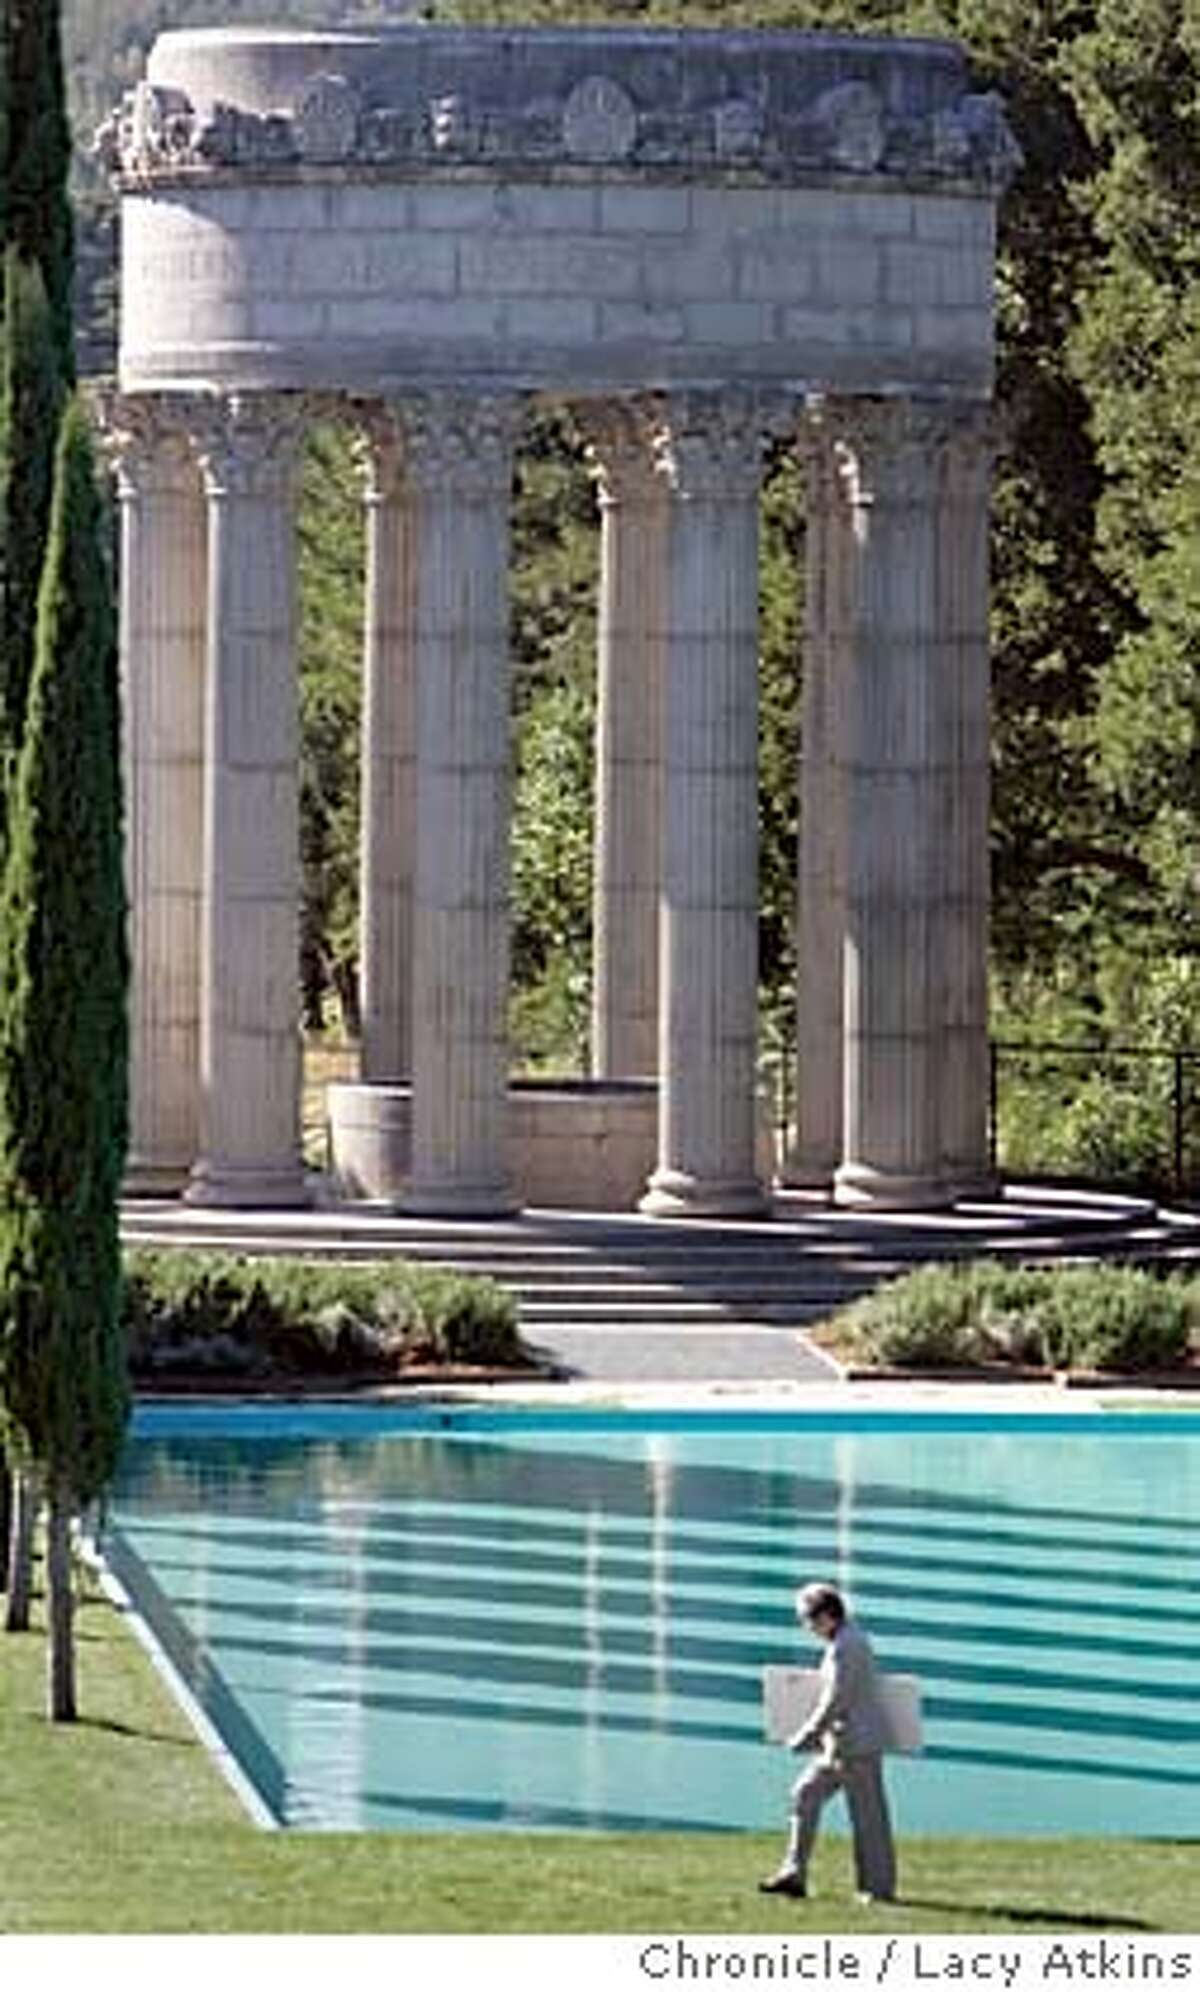 Historic Pulgas Water Temple reopens after two years in Mateo, Oct.25,2004. LACY ATKINS/SAN FRANCISCO CHRONICLE Metro#Metro#Chronicle#10/26/2004#ALL#5star##0422432106